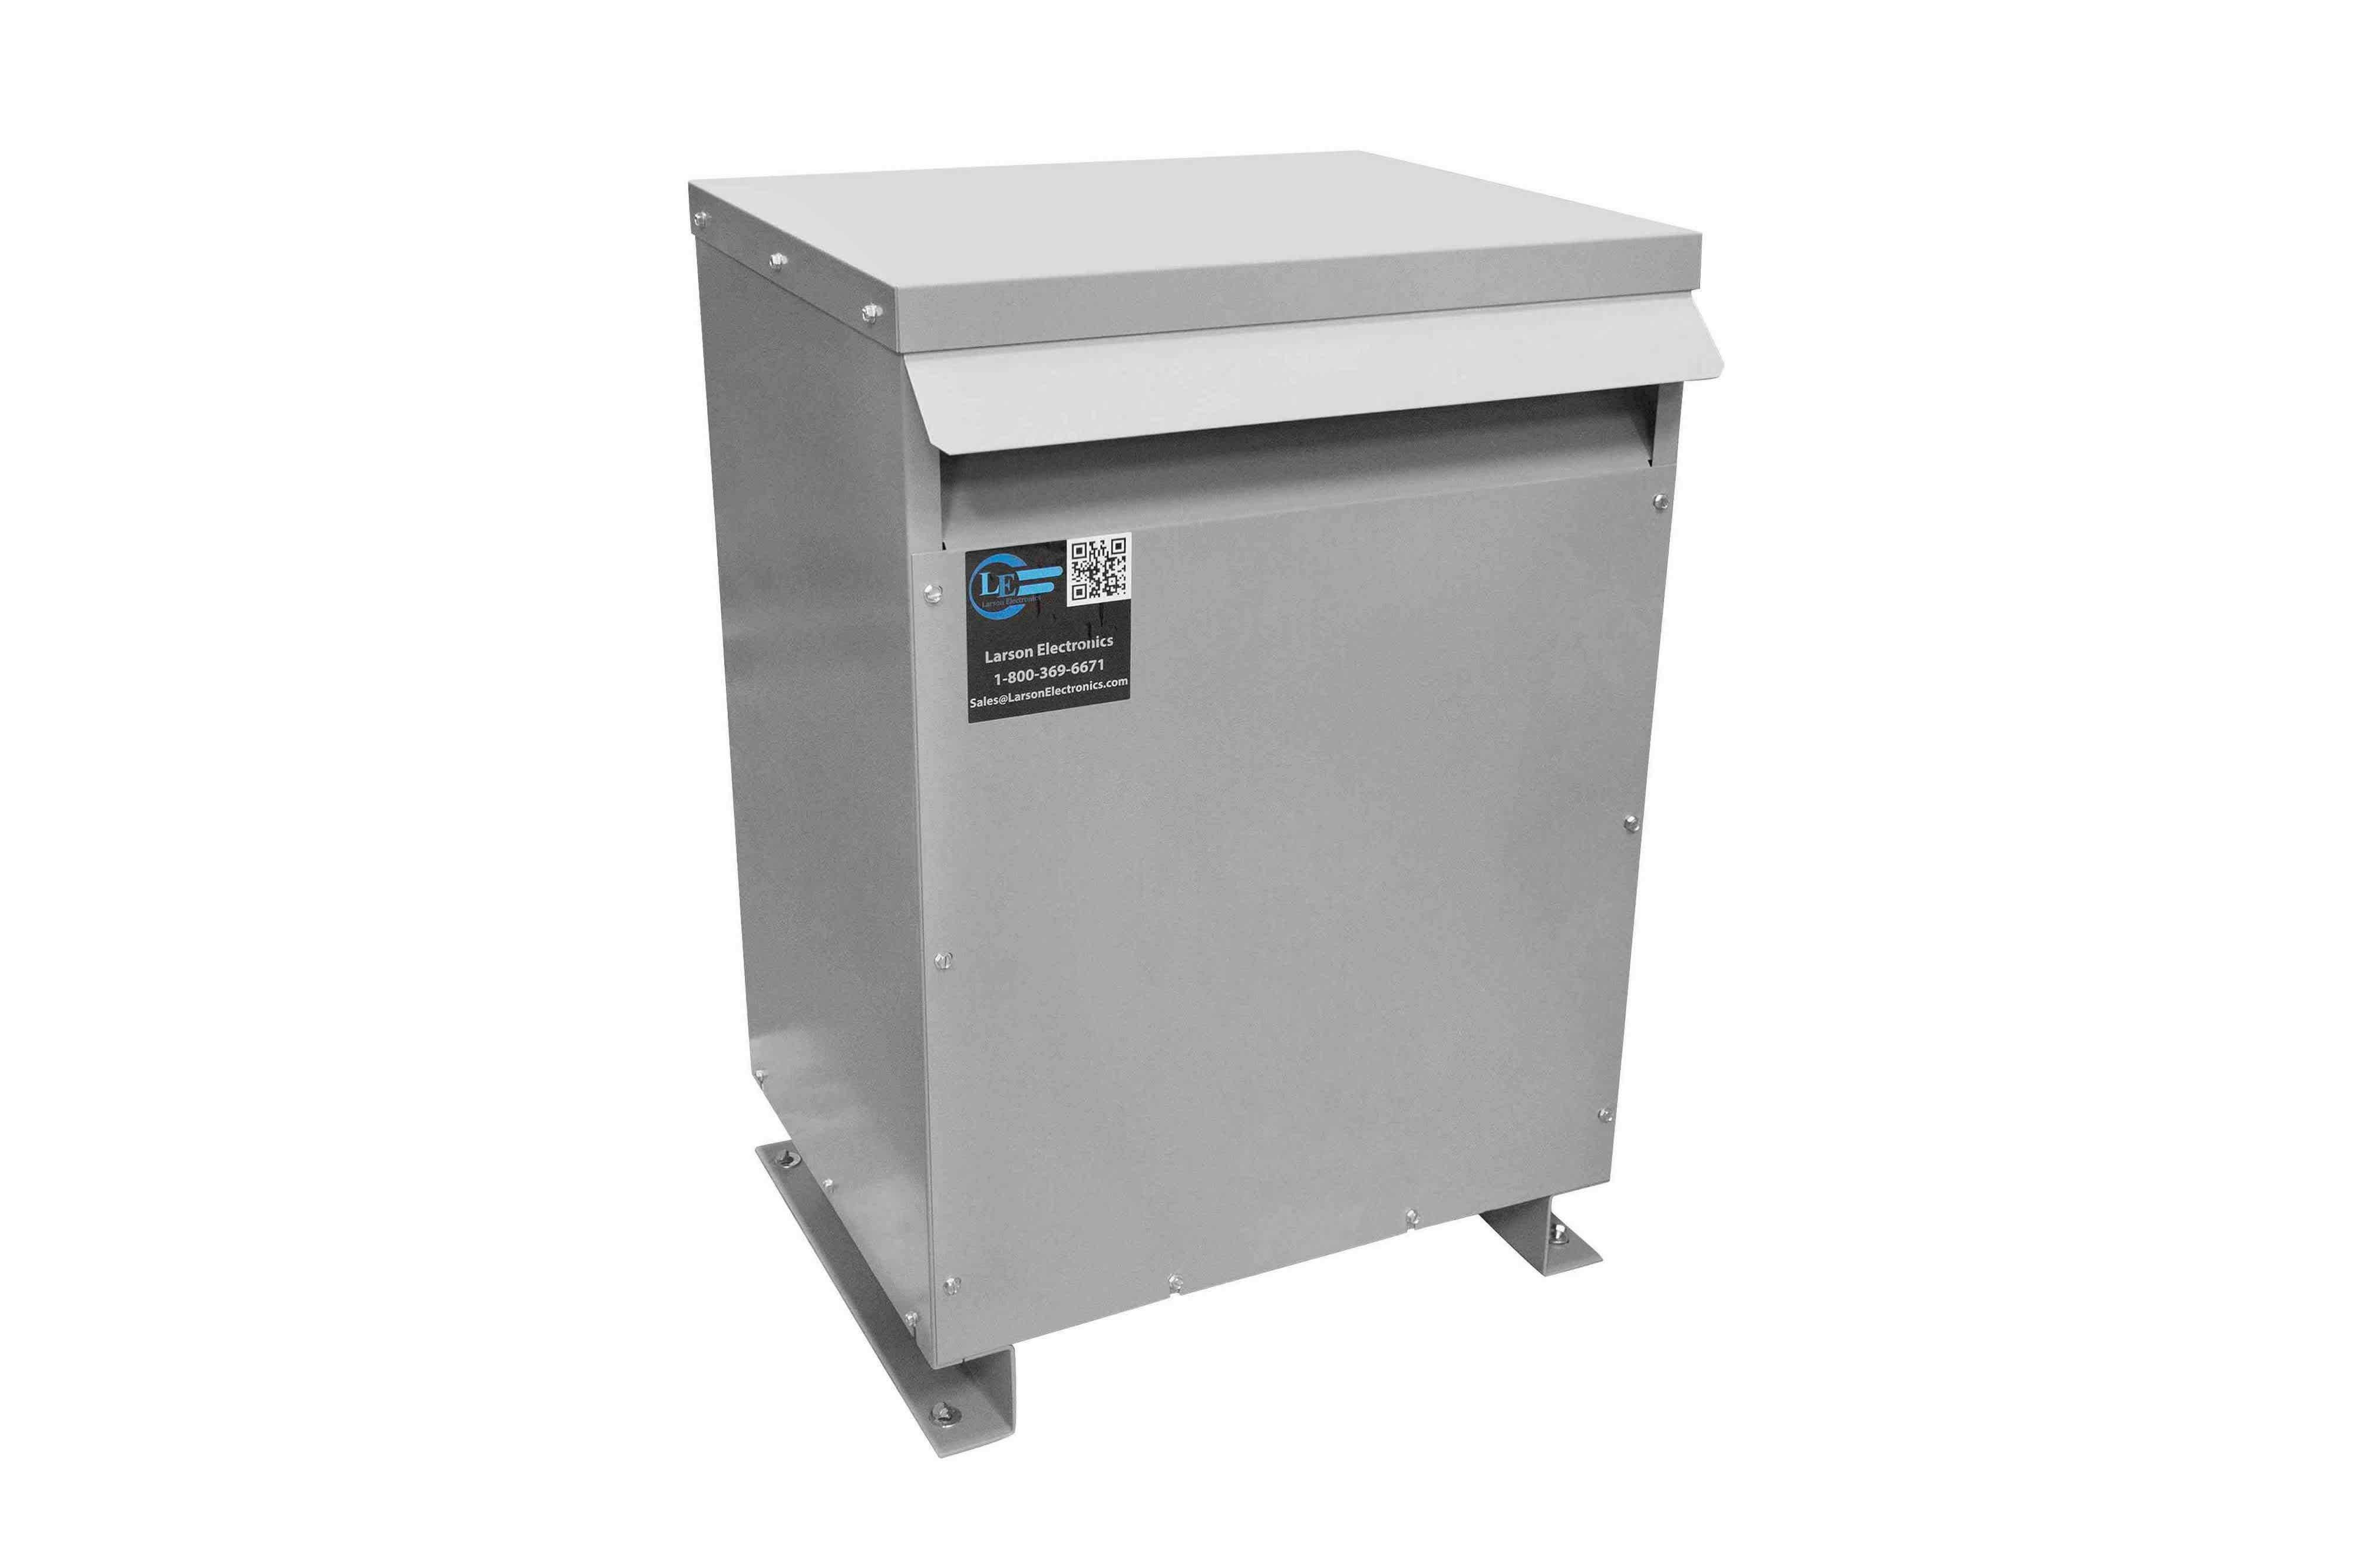 38 kVA 3PH DOE Transformer, 575V Delta Primary, 400Y/231 Wye-N Secondary, N3R, Ventilated, 60 Hz